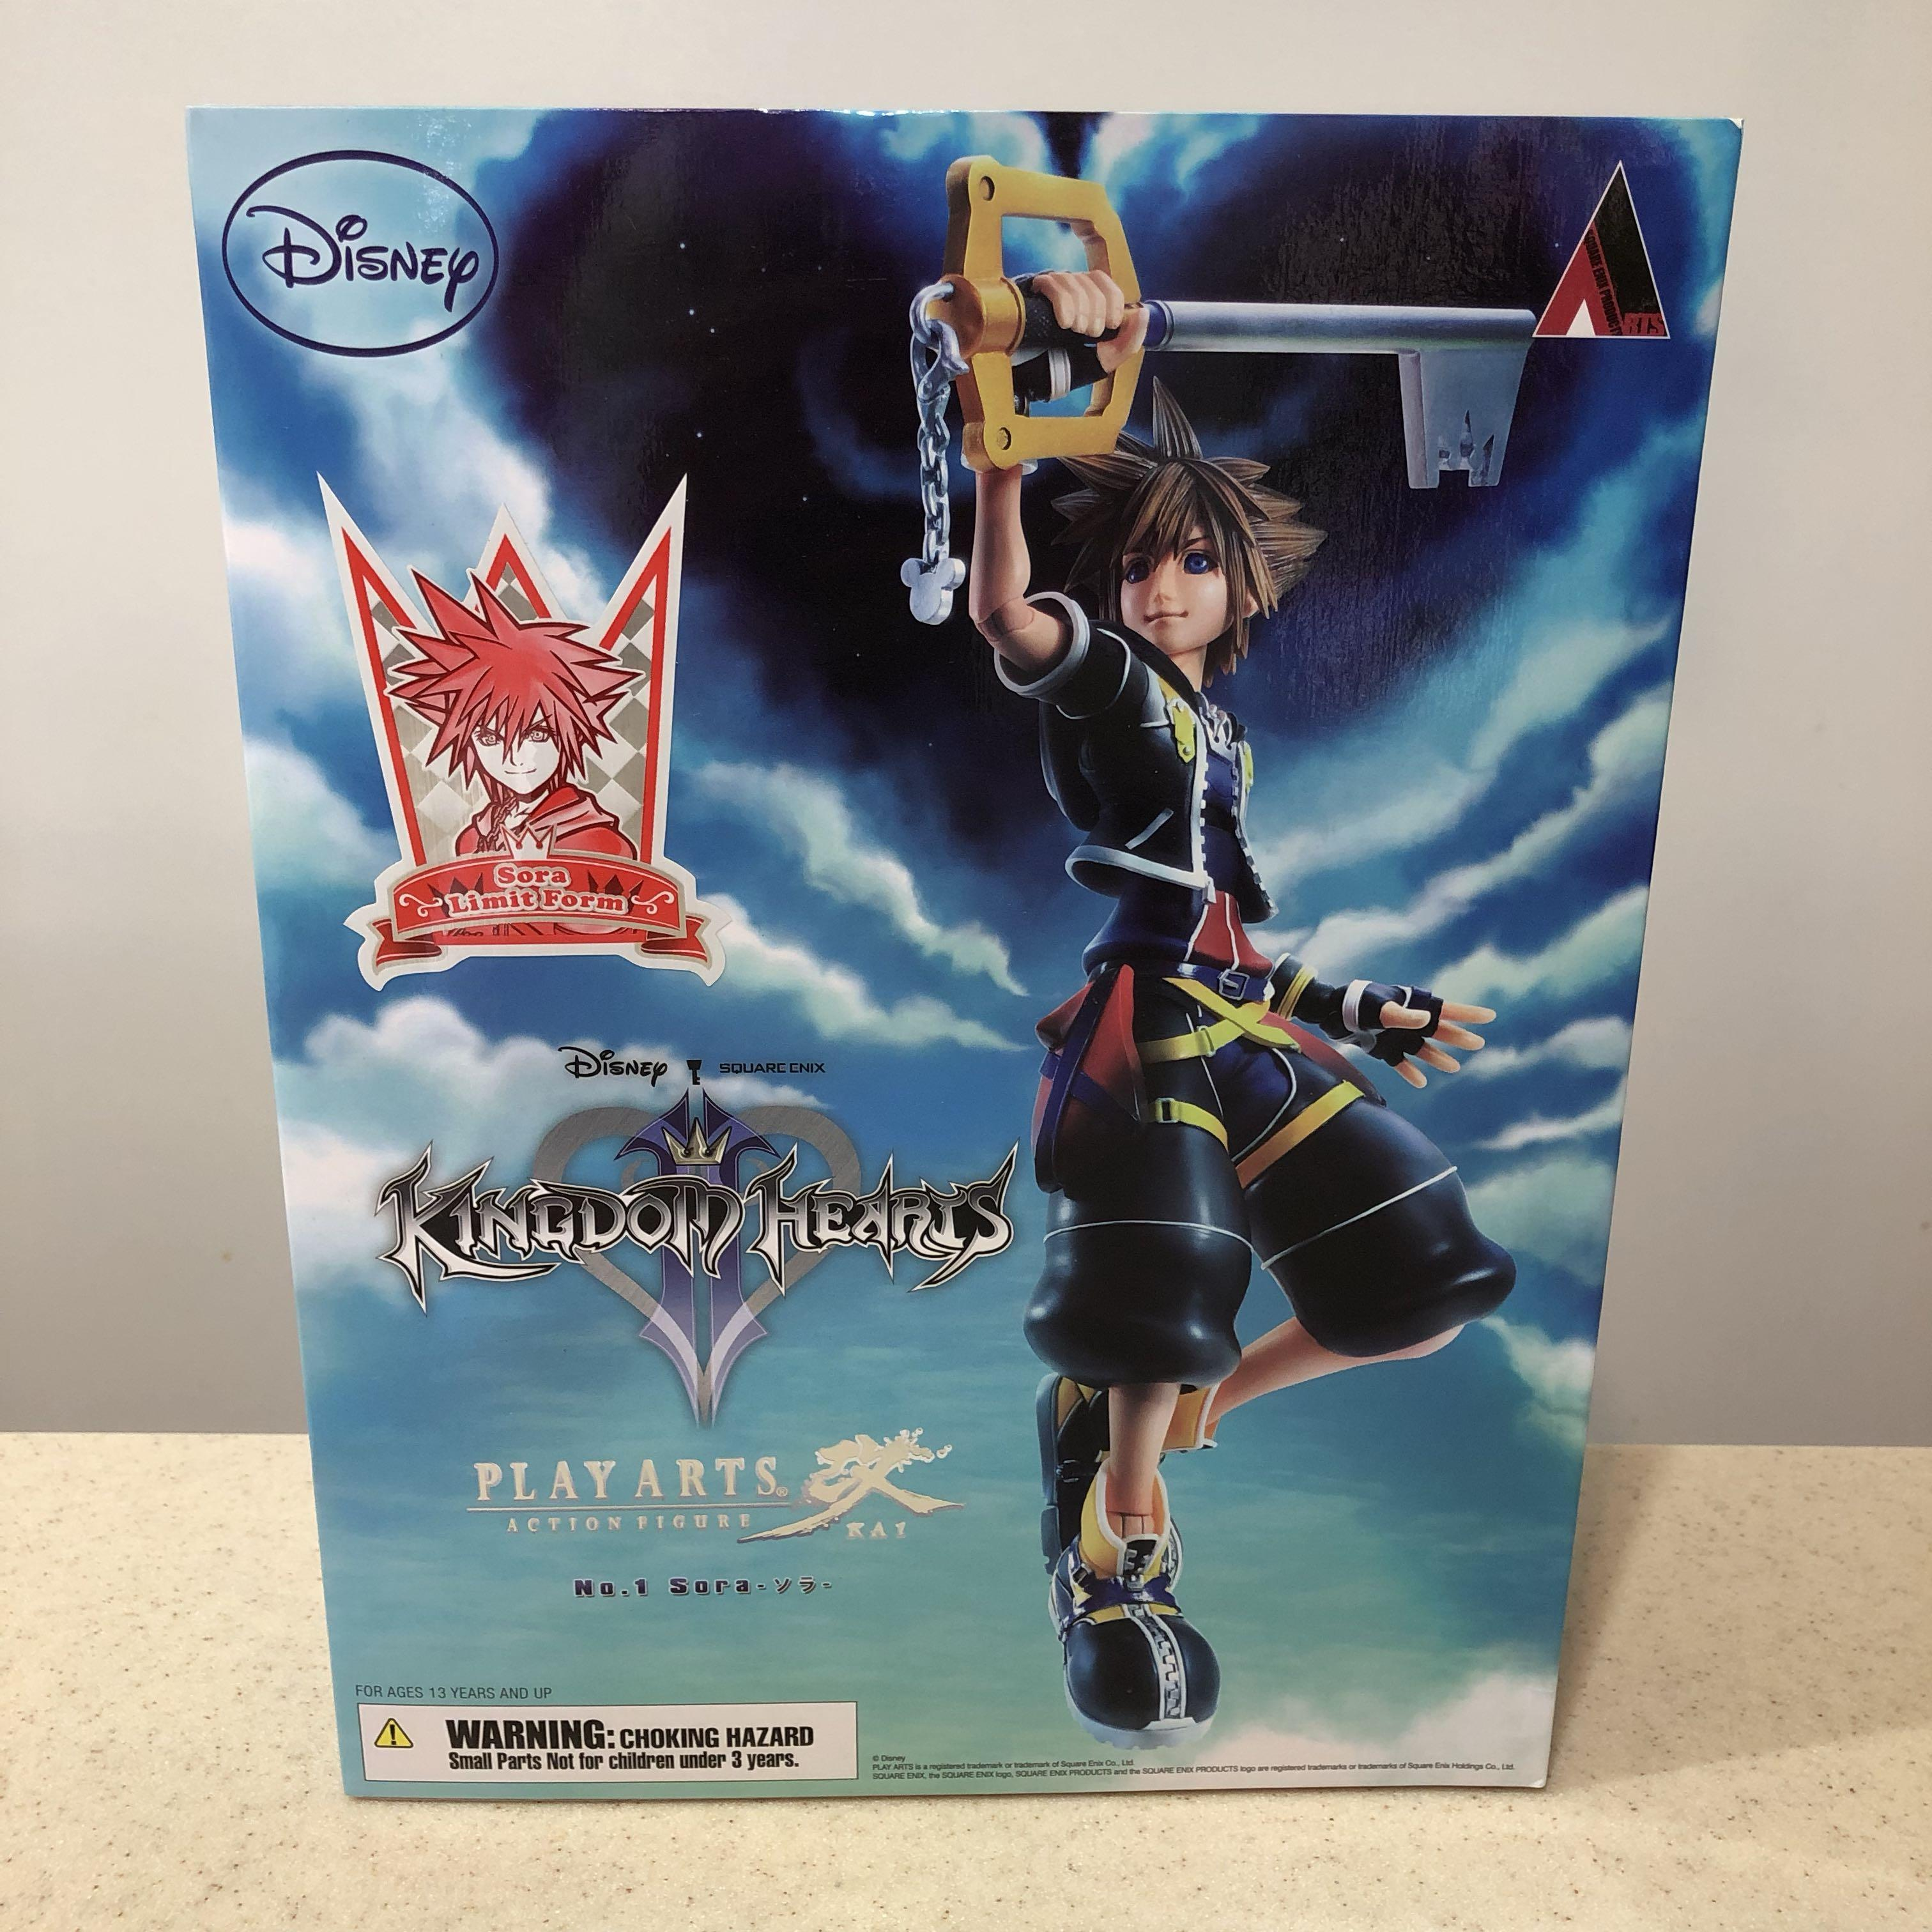 Disney Kingdom Hearts No. 1 Sora Limit Form Play Arts Kai Action Figure